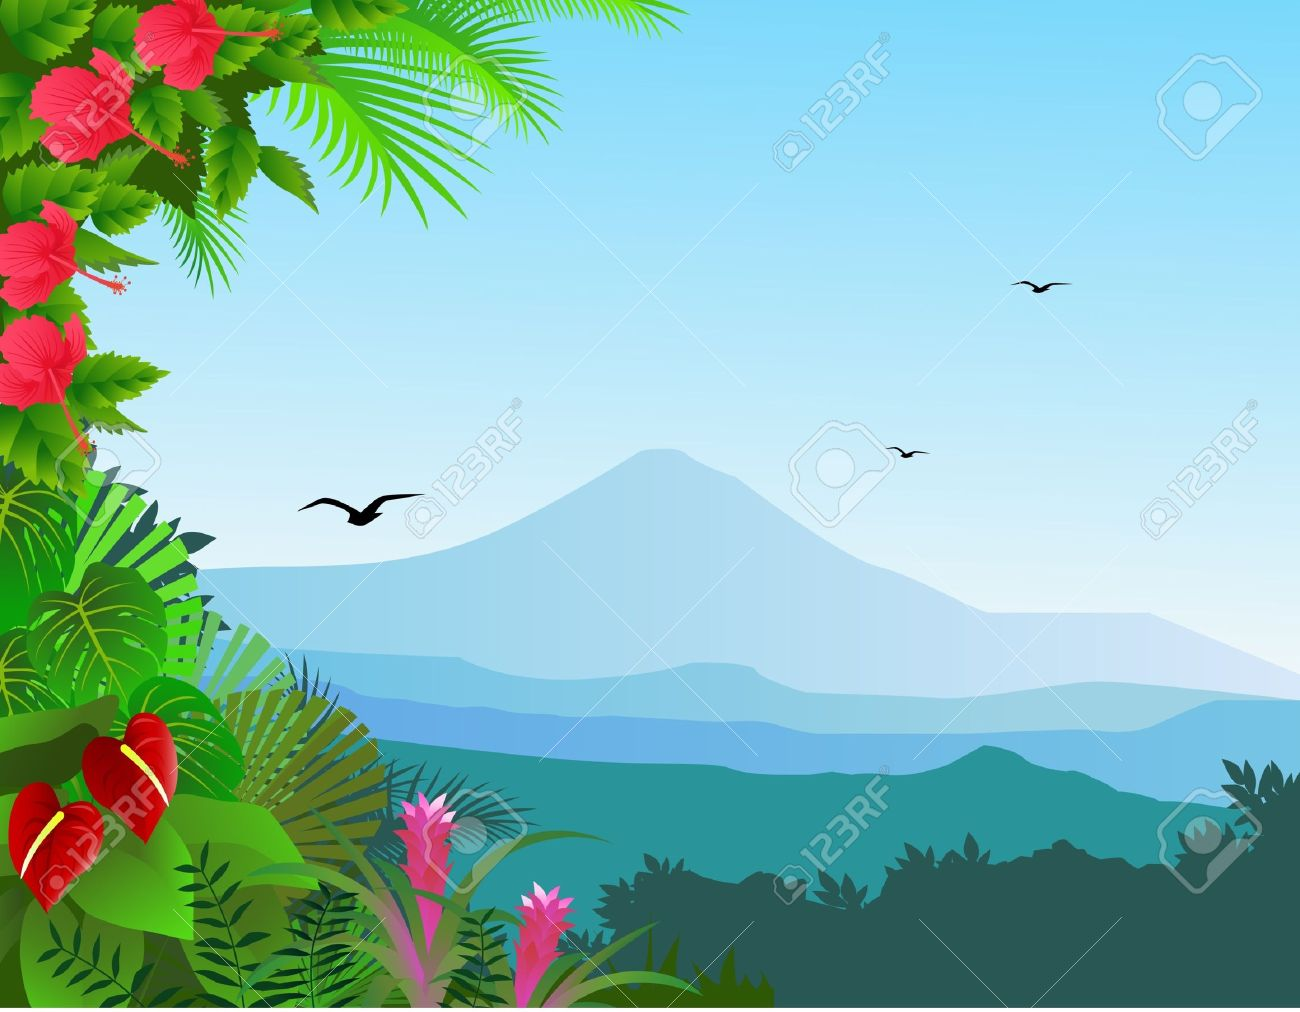 tropical forest background royalty free cliparts vectors and stock rh 123rf com tropical rainforest clipart tropical rainforest waterfall clipart